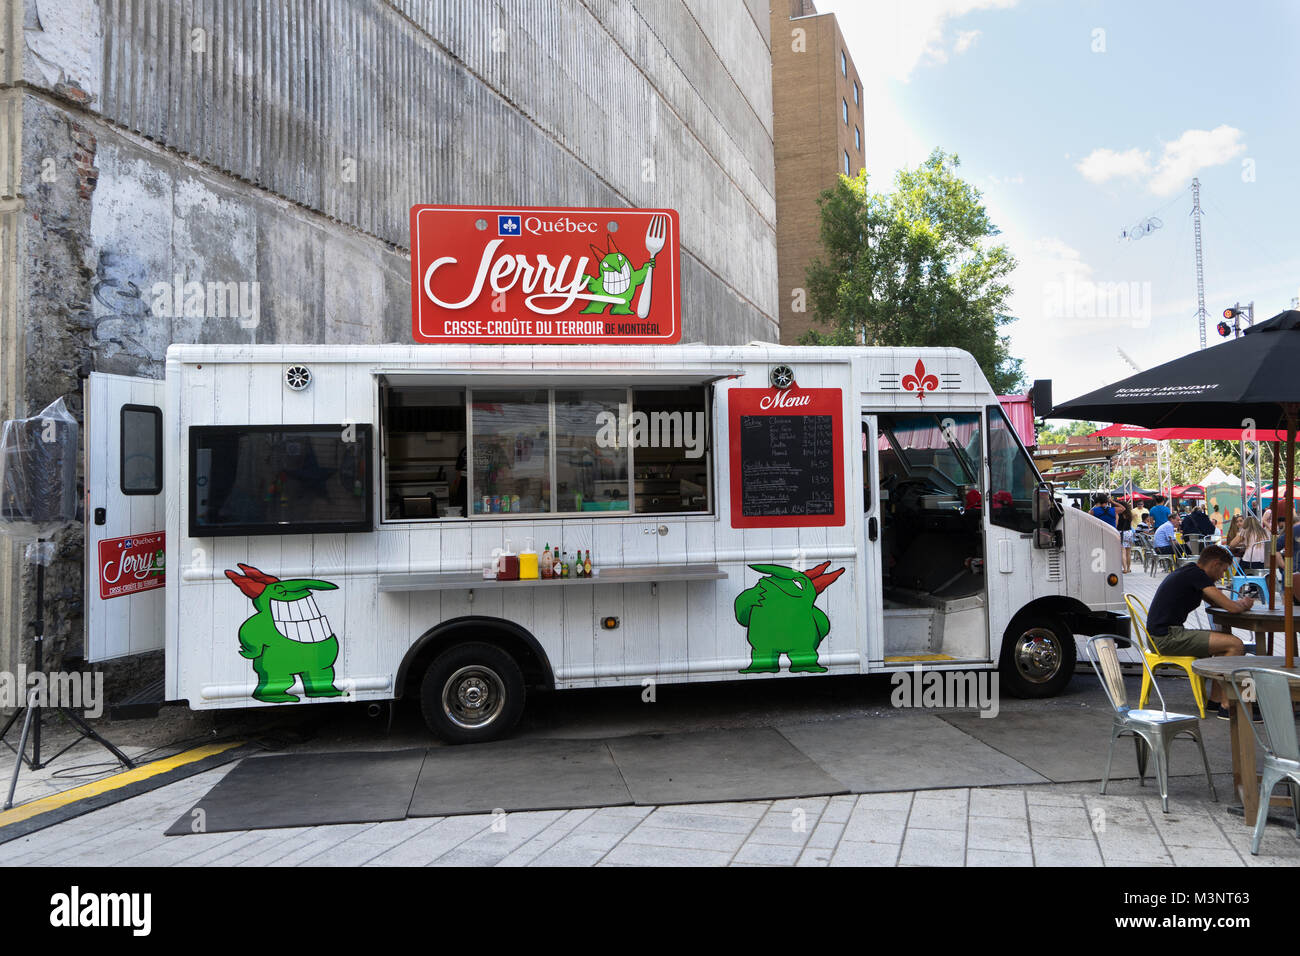 Jerry's foodtruck at Just for Laughs festival, Montreal, province of Quebec, Canada. - Stock Image